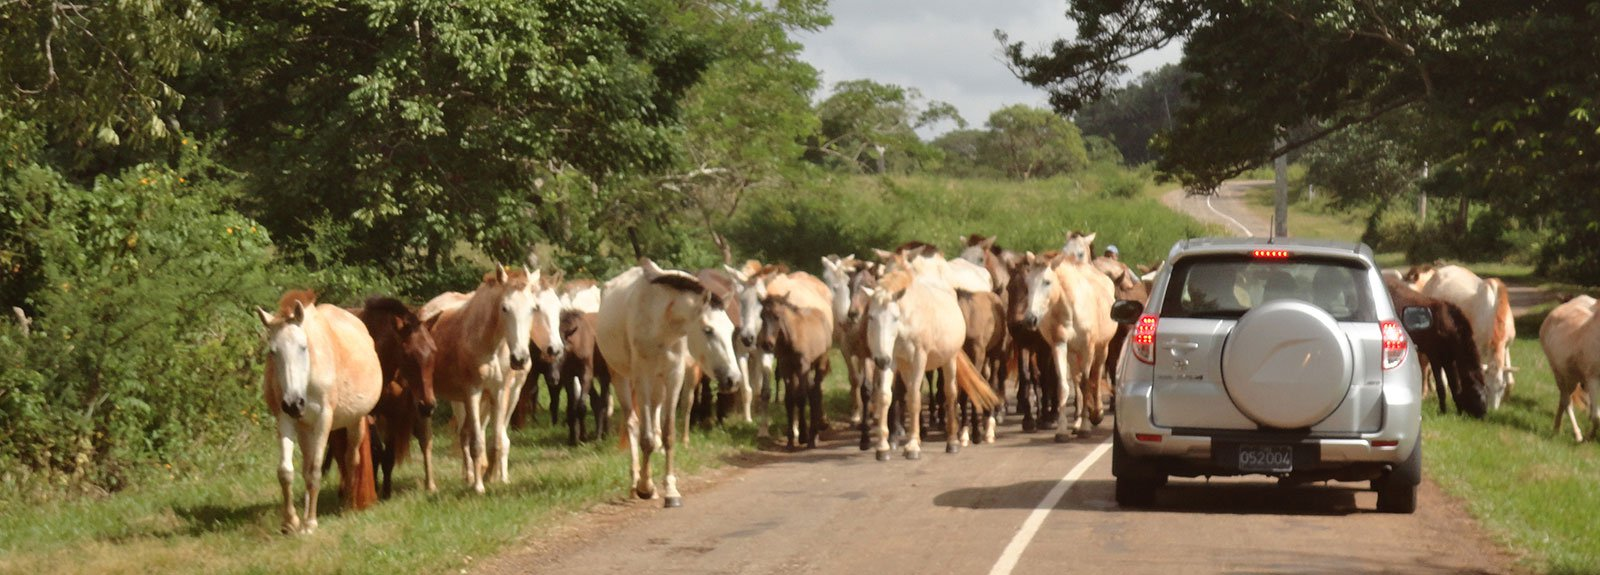 Road with a car surround by cows in Jaruco